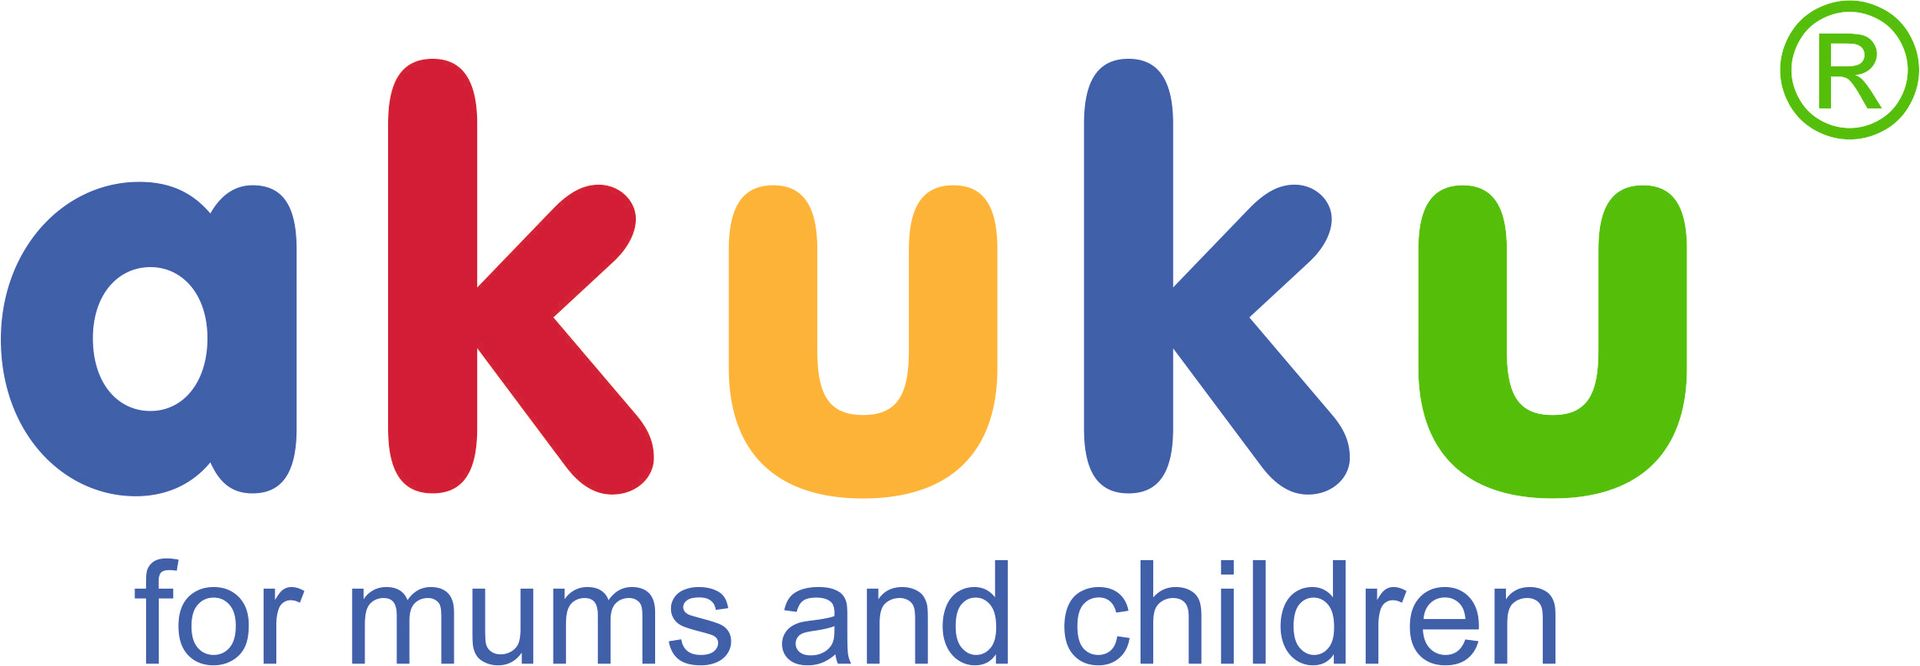 LOGO AKUKU for mums and children jpeg cmyk.jpg